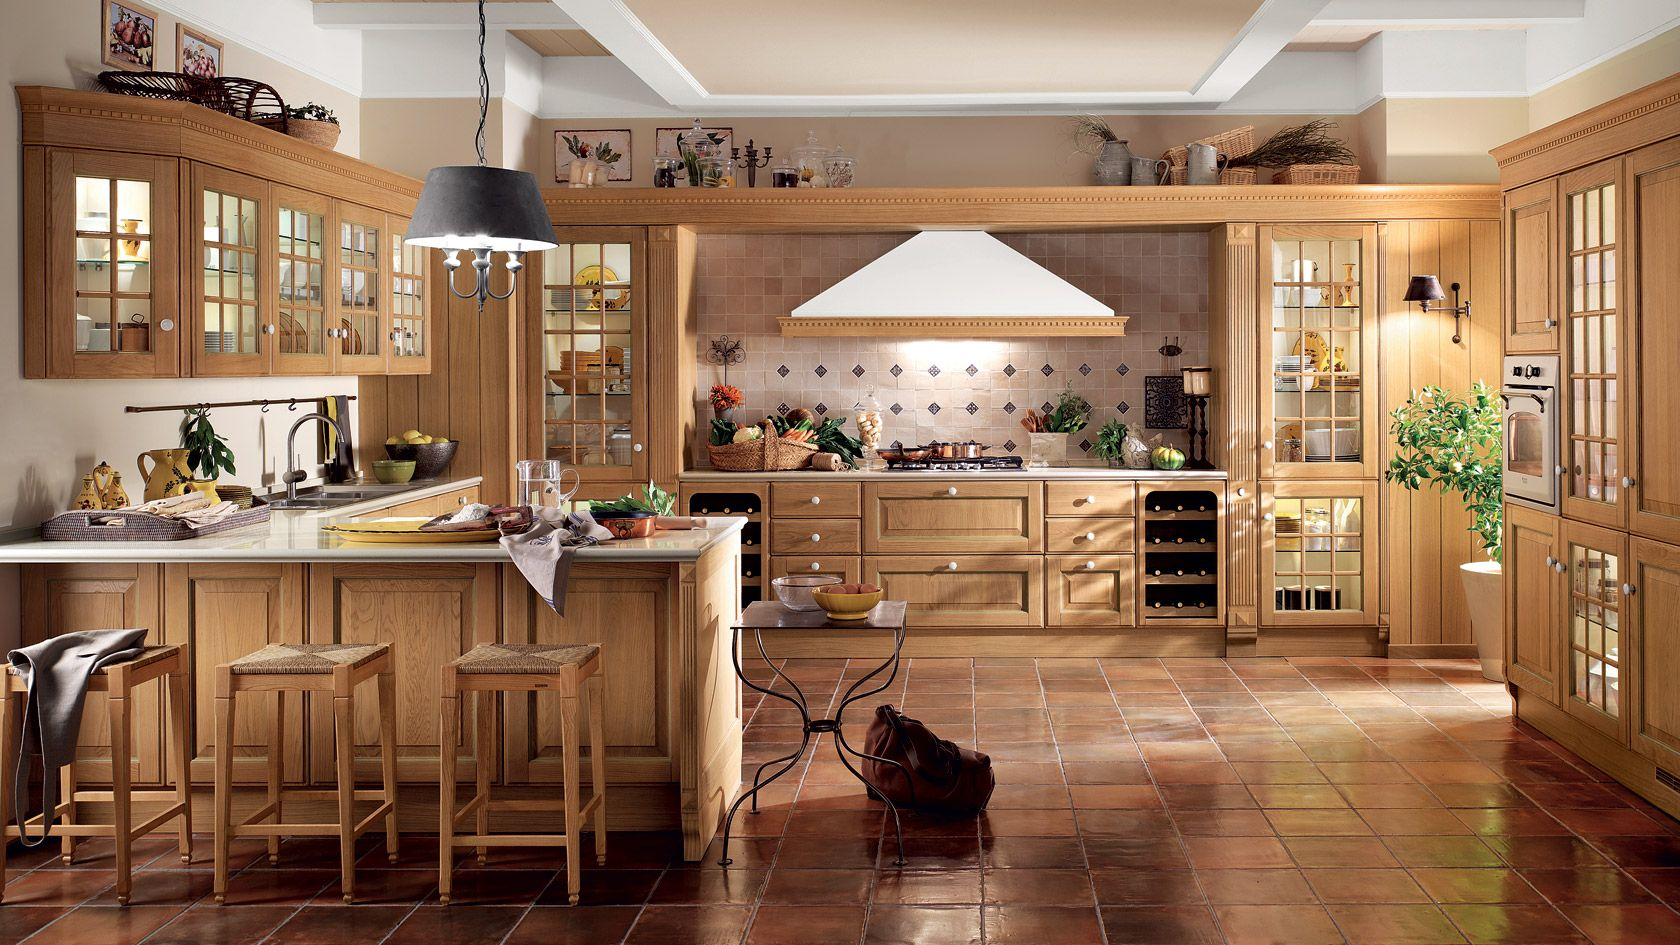 cucina in muratura - Cerca con Google | office | Pinterest | Kitchen ...